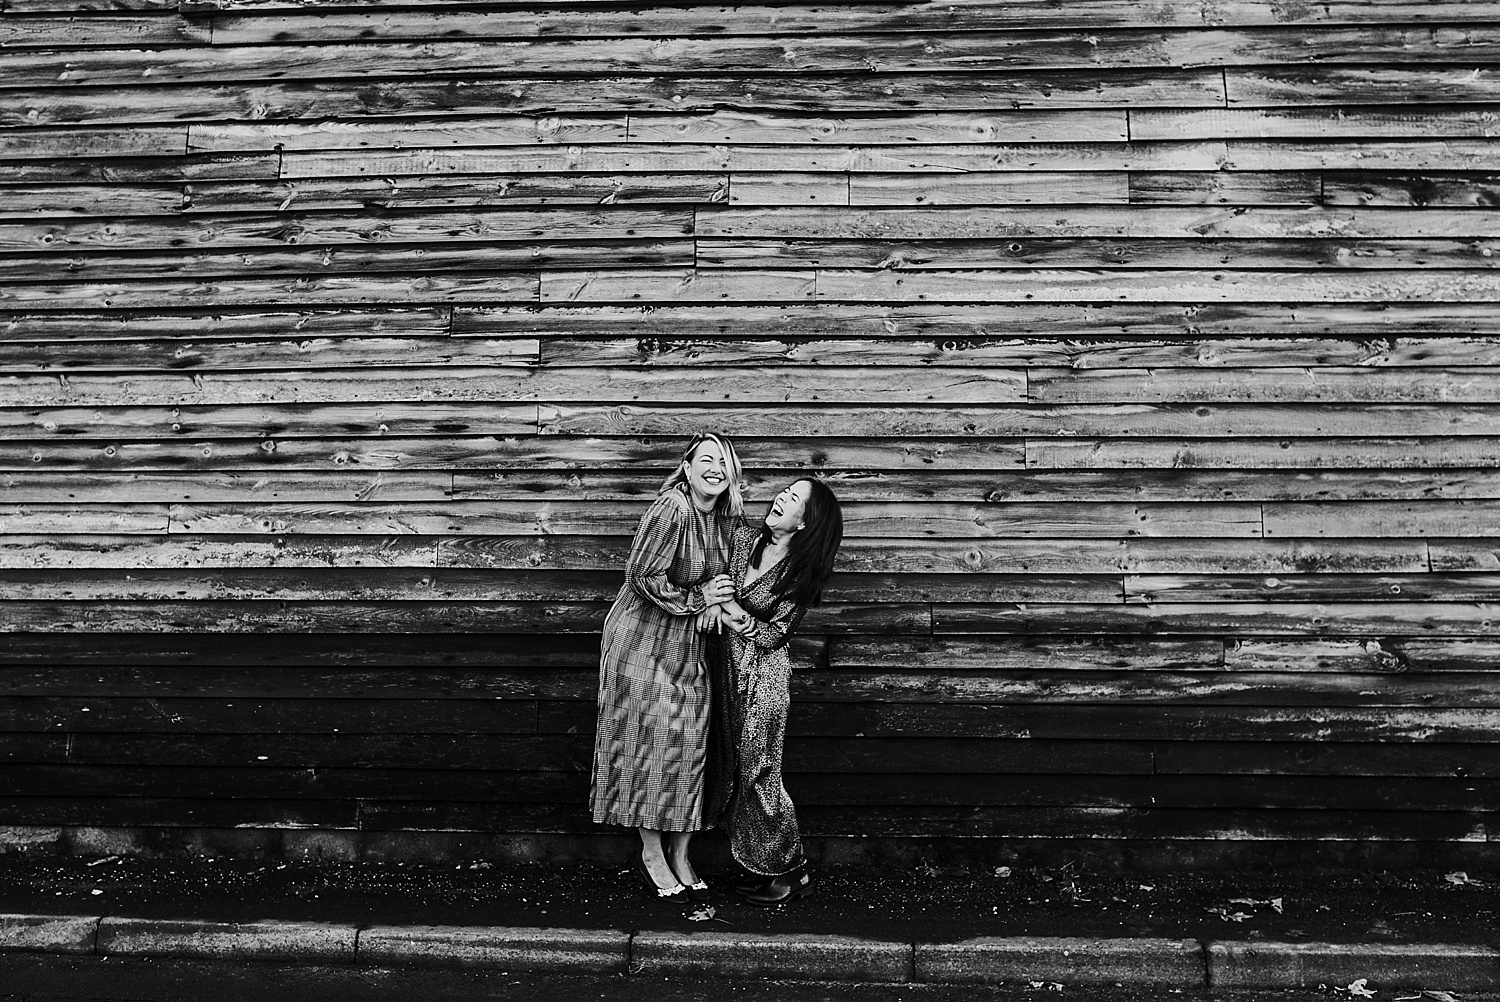 2 women in dresses laughing in front of barn